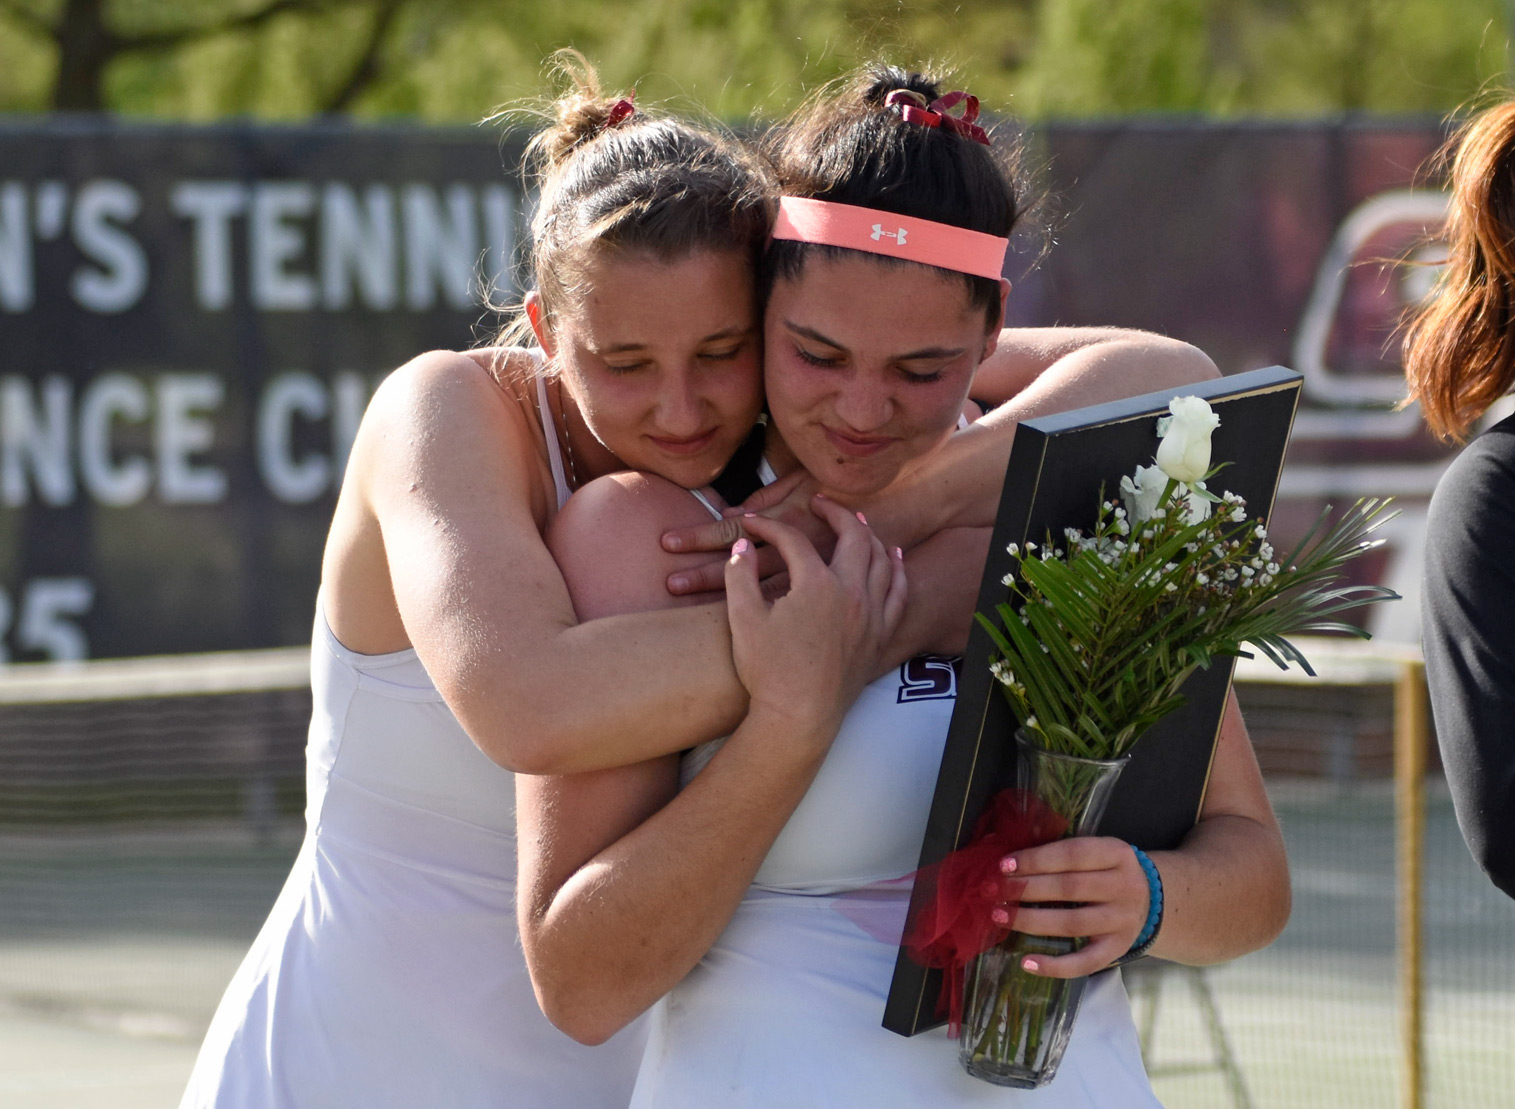 Senior+Polina+Dozortseva+and+junior+Athena+Chrysanthou+embrace+on+Saturday%2C+April+15%2C+2017%2C+during+a+senior+day+awards+ceremony+following+the+final+home+match+in+program+history.+In+January%2C+SIU+athletics+announced+that+it+would+cut+the+men%E2%80%99s+and+women%E2%80%99s+tennis+teams+effective+July+1.+%28Anna+Spoerre+%7C+%40annaspoerre%29